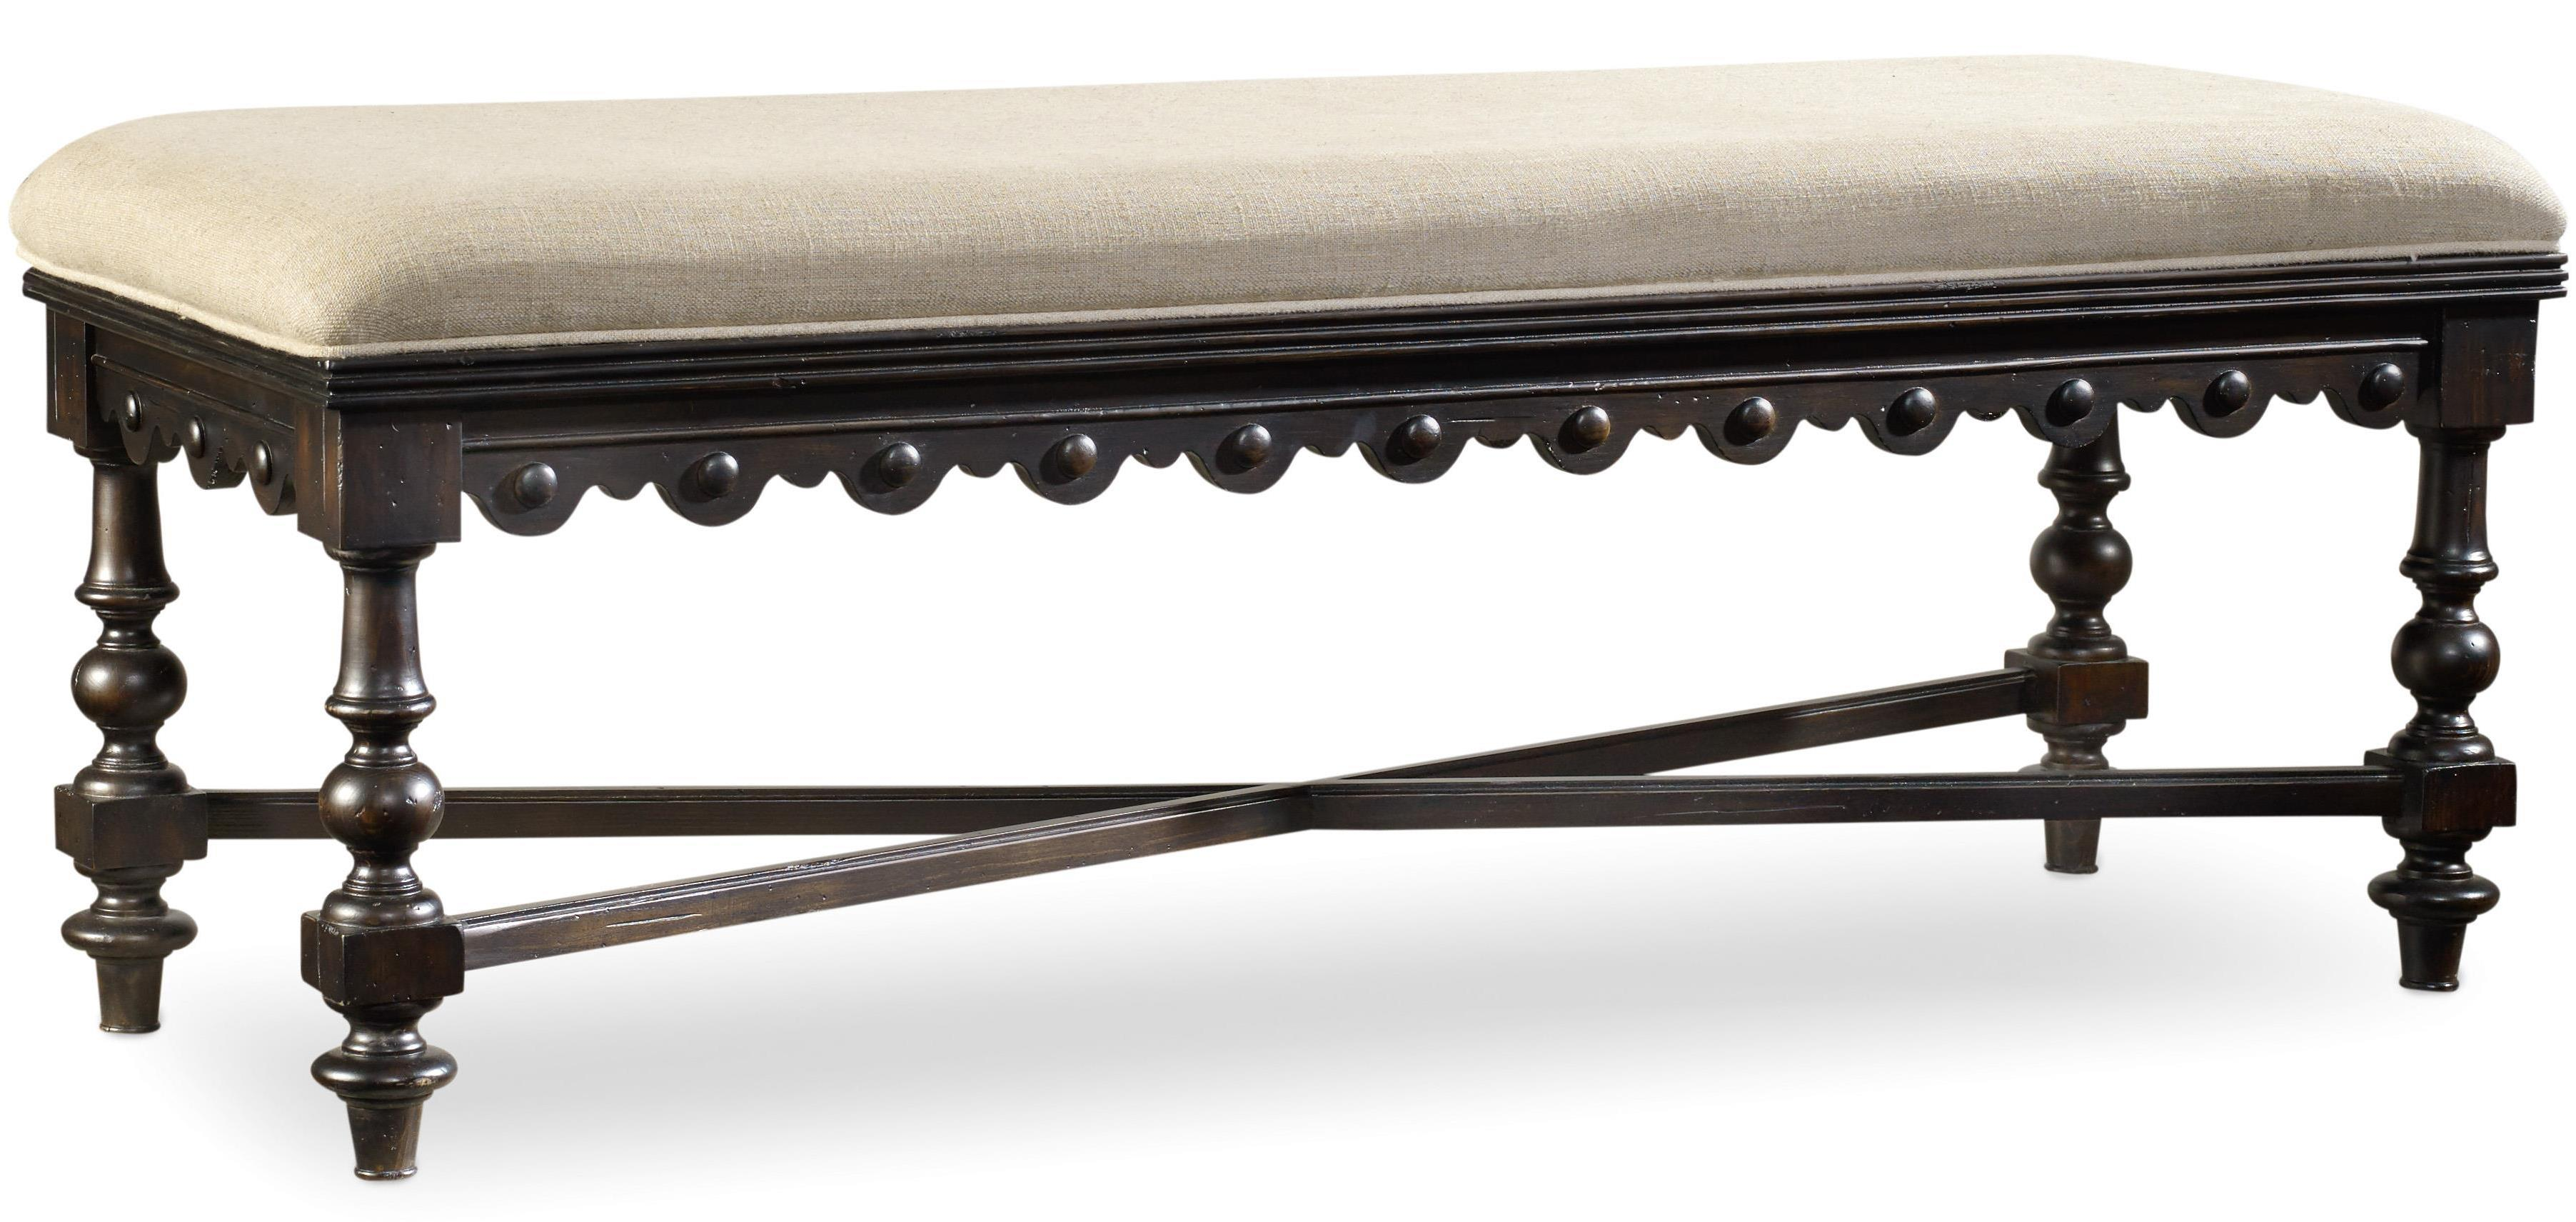 Treviso Bed Bench by Hooker Furniture at Alison Craig Home Furnishings